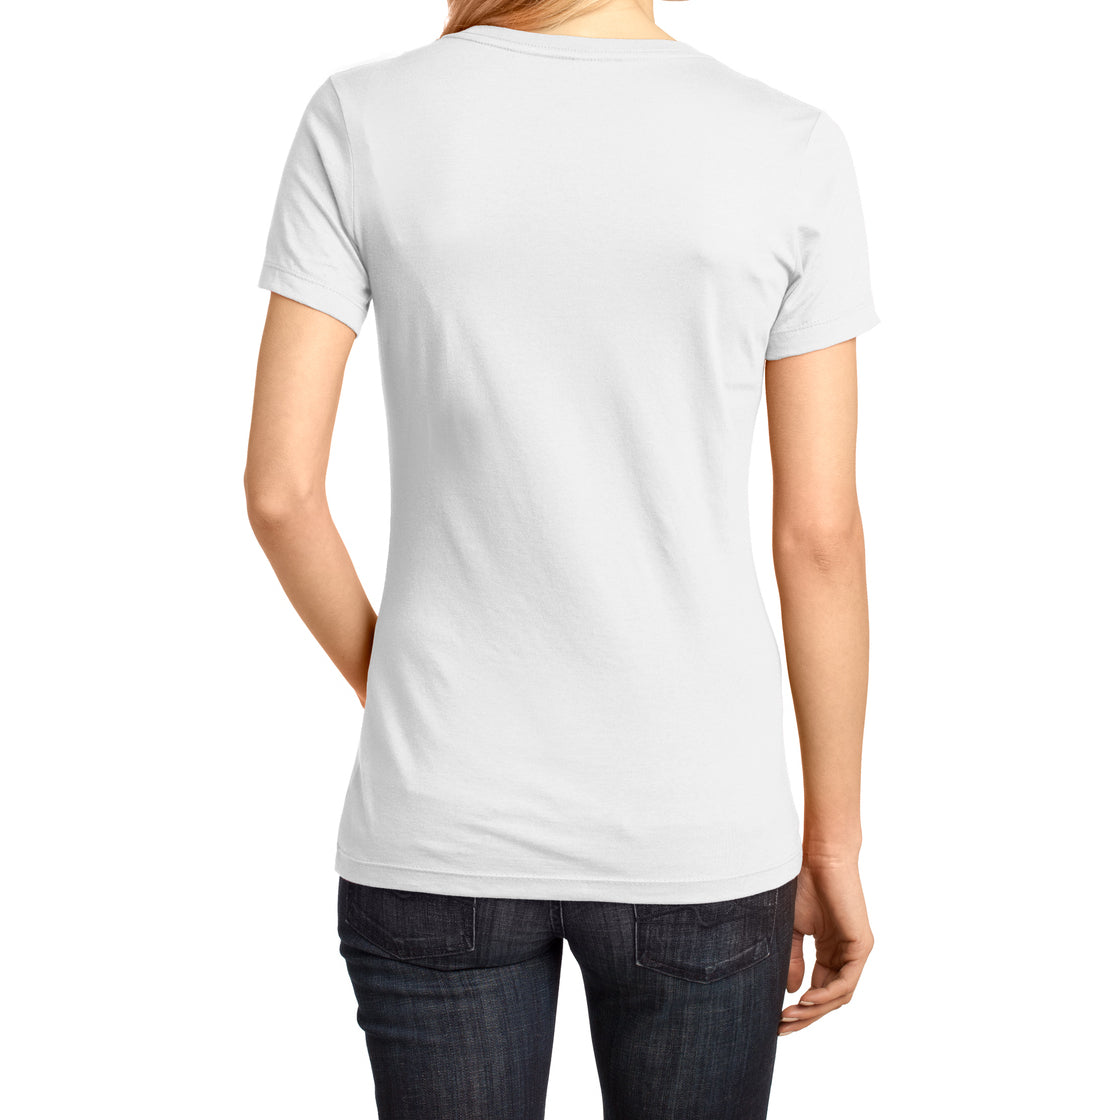 Ladies Perfect Weight V-Neck Tee - Bright White - Back